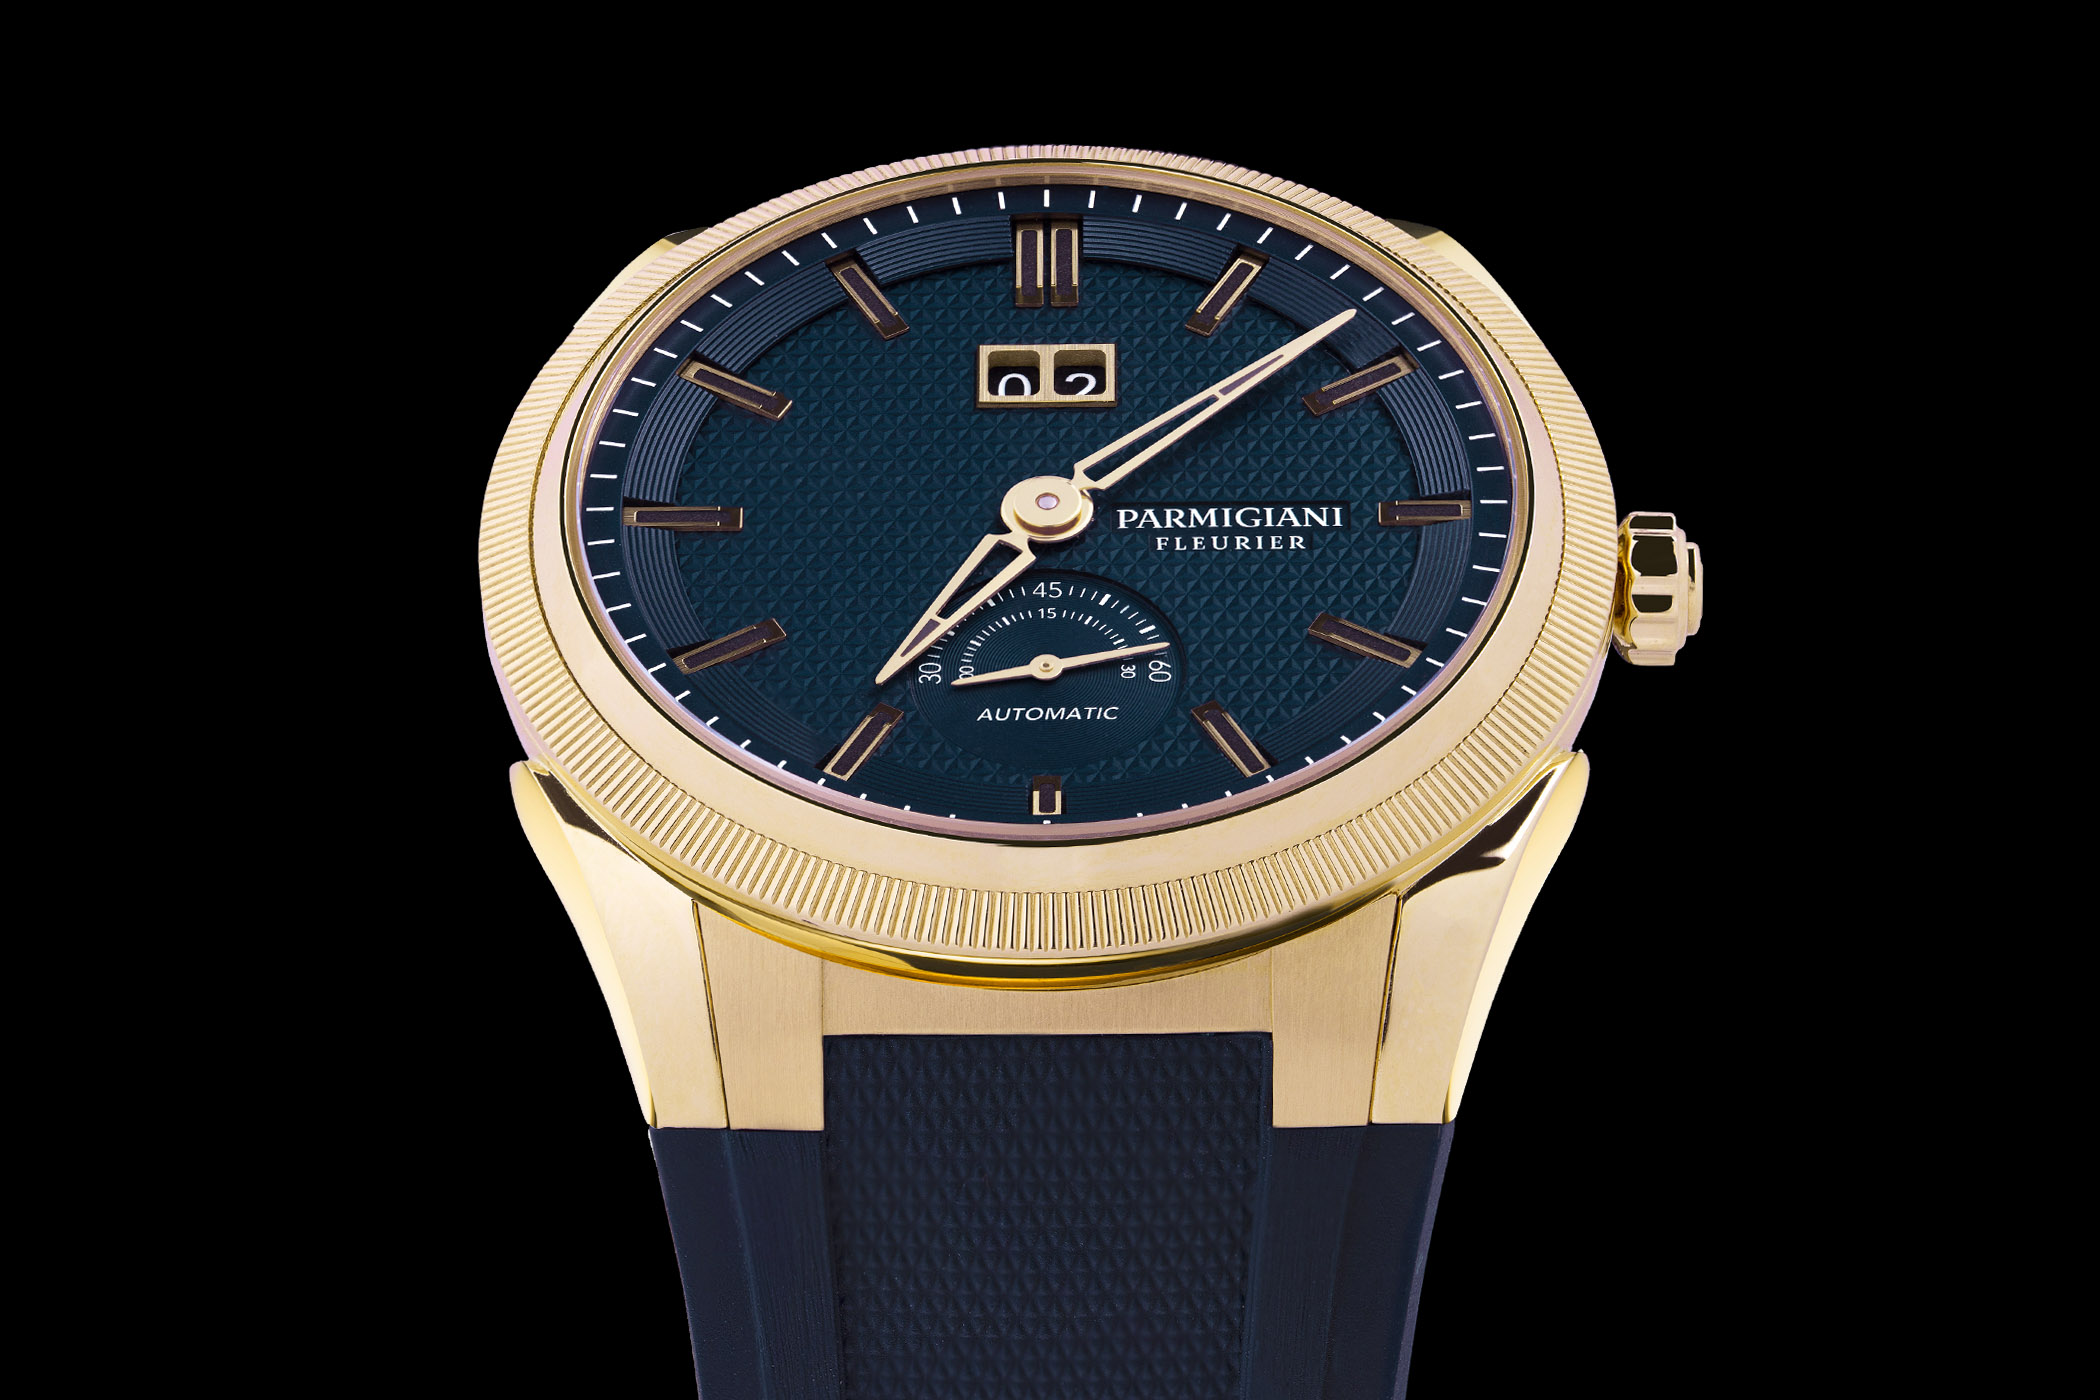 Parmigiani Fleurier Tonda GT line 2020 luxury sports watch collection